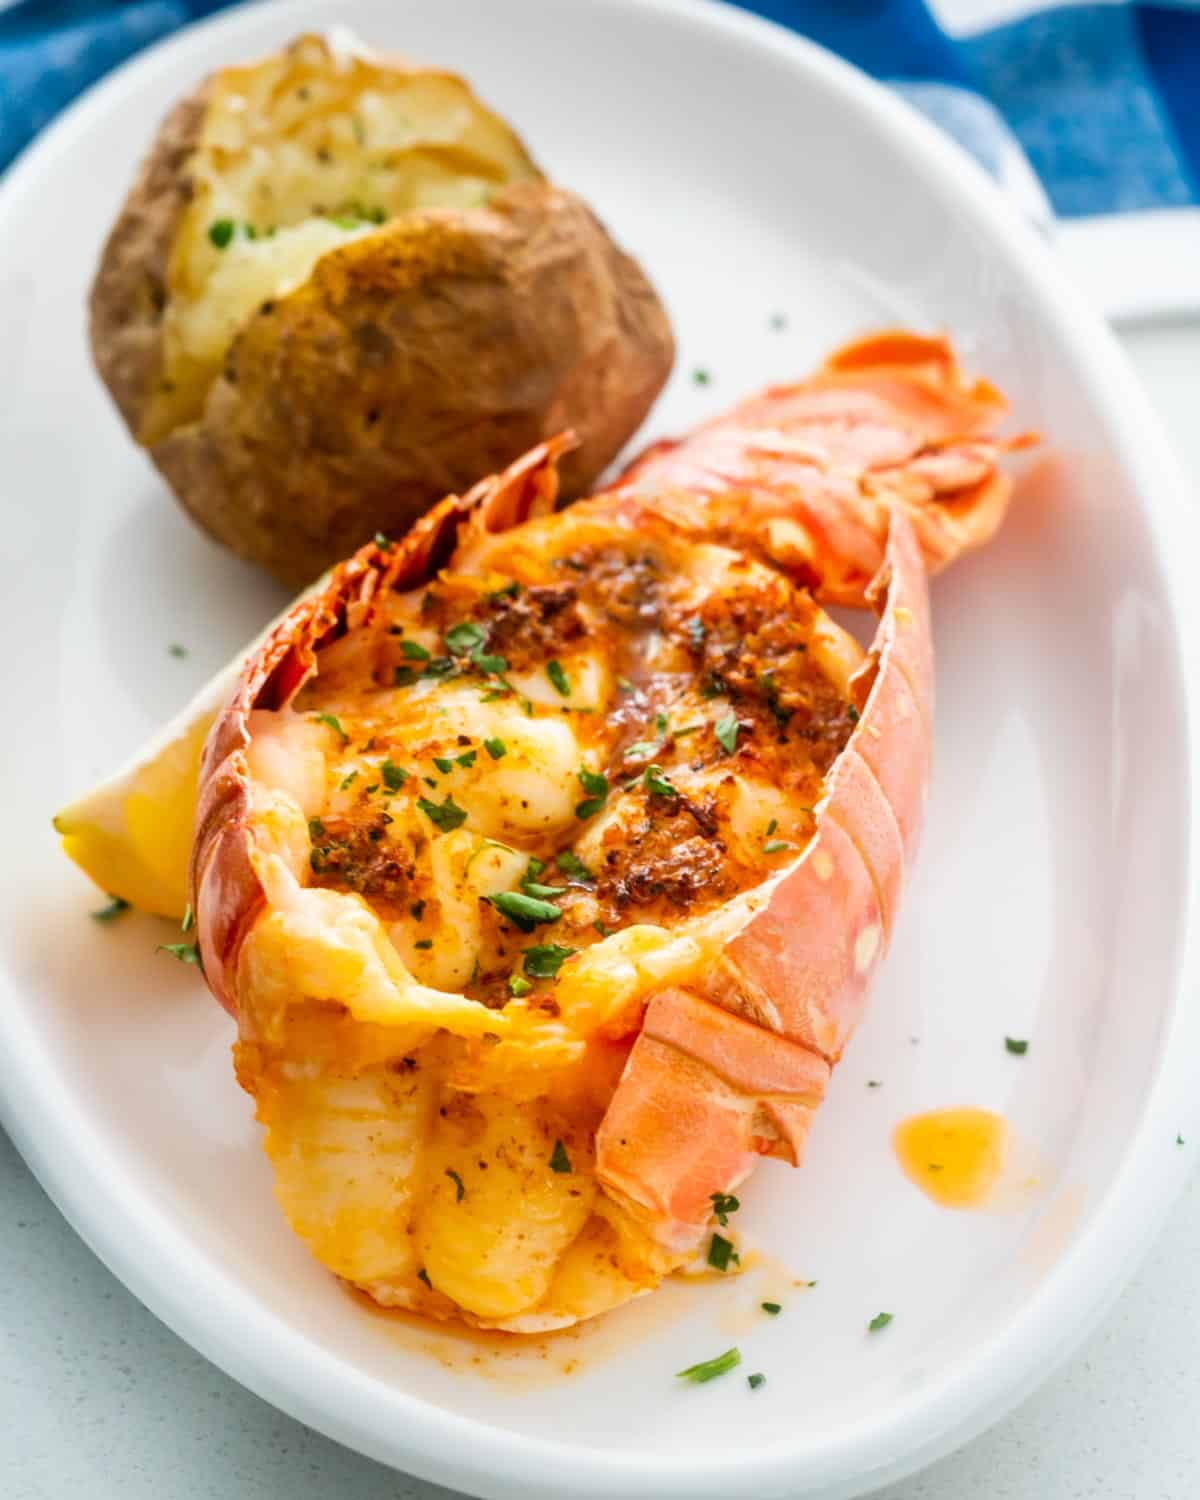 a lobster tail on a white plate with a baked potato.